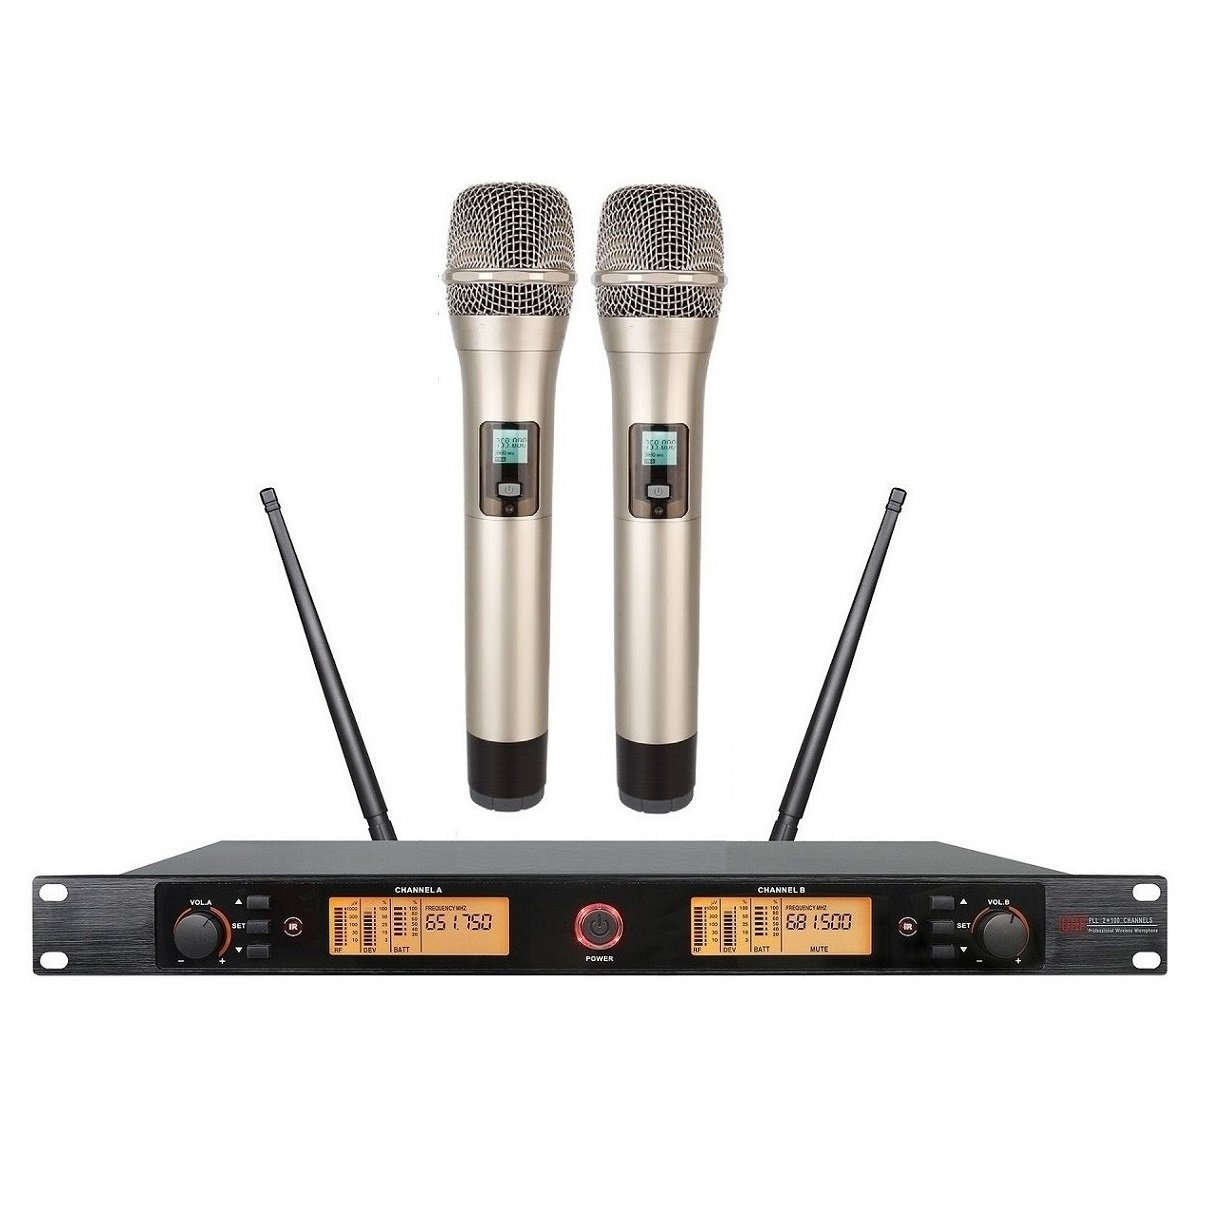 uhf wireless microphone Karaoke Professional wireless microphone Dual Channels PLL For Church,Home Karaoke, Business Meetings.Easy To Set Up